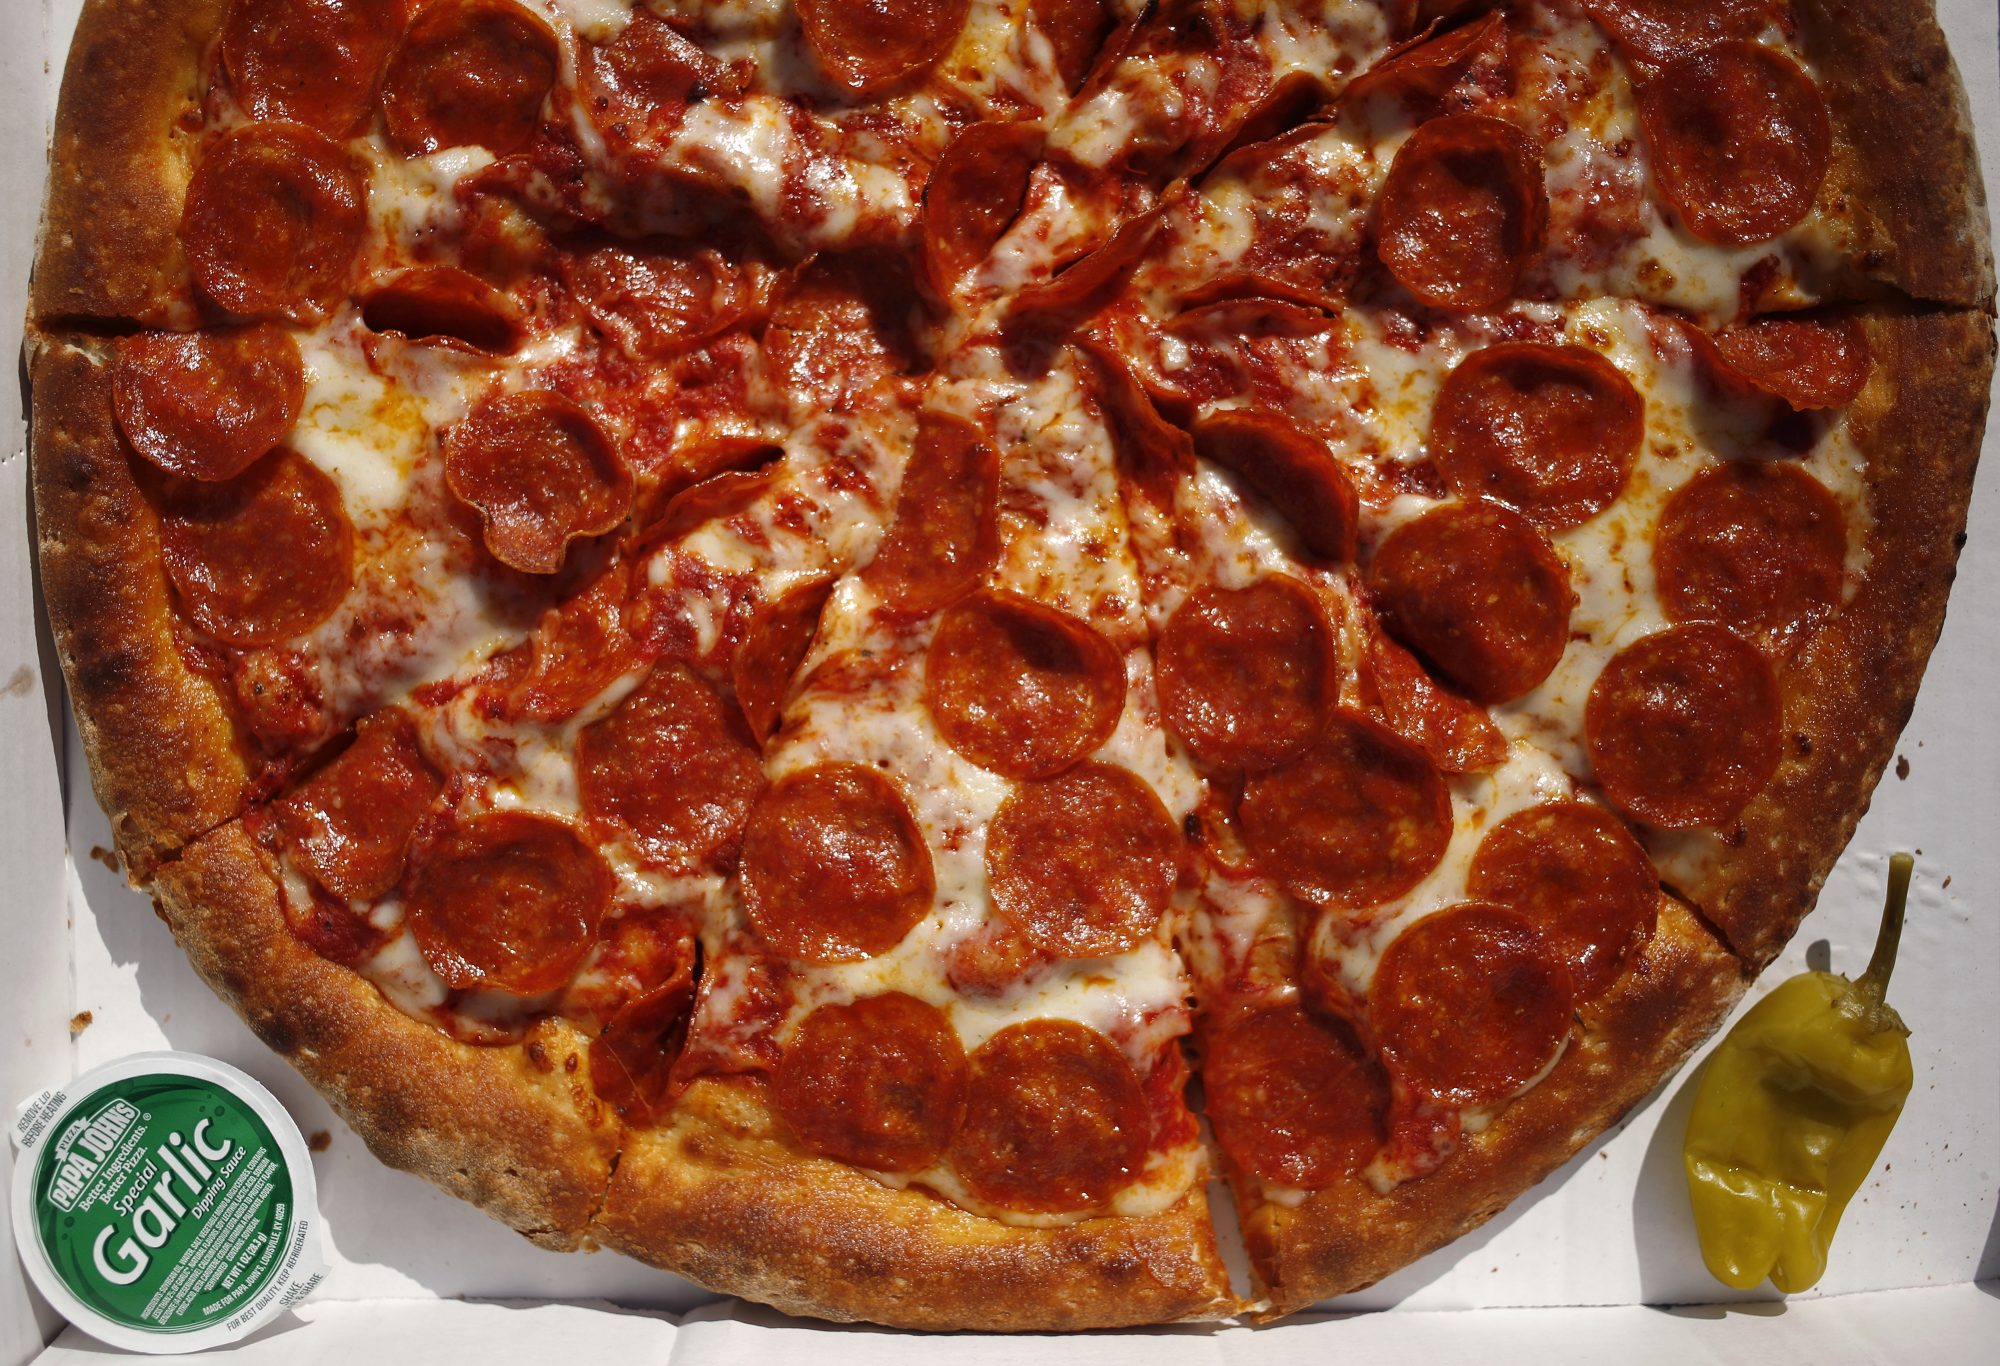 papa johns essay After news of williams' yale-worthy essay reached the desk of papa john's founder and ceo john schnatter, he came up with a plan to show williams a little customer appreciation in gratitude for her loyalty and hard work.